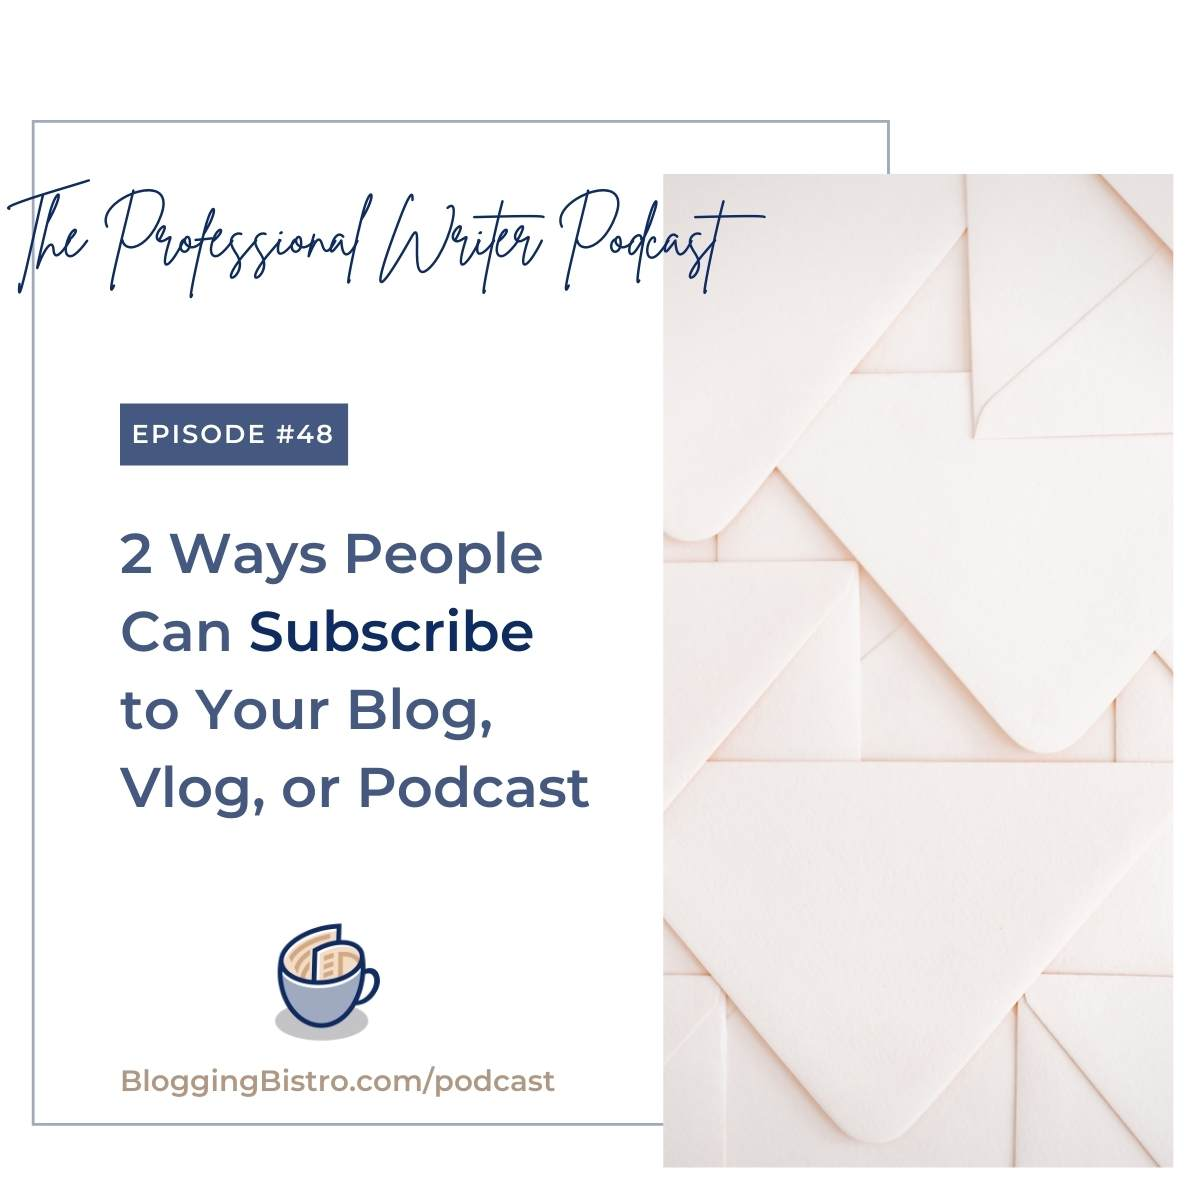 Two Ways People Can Subscribe to Your Blog, Vlog, or Podcast   Episode 48 of The Professional Writer podcast with Laura Christianson   BloggingBistro.com